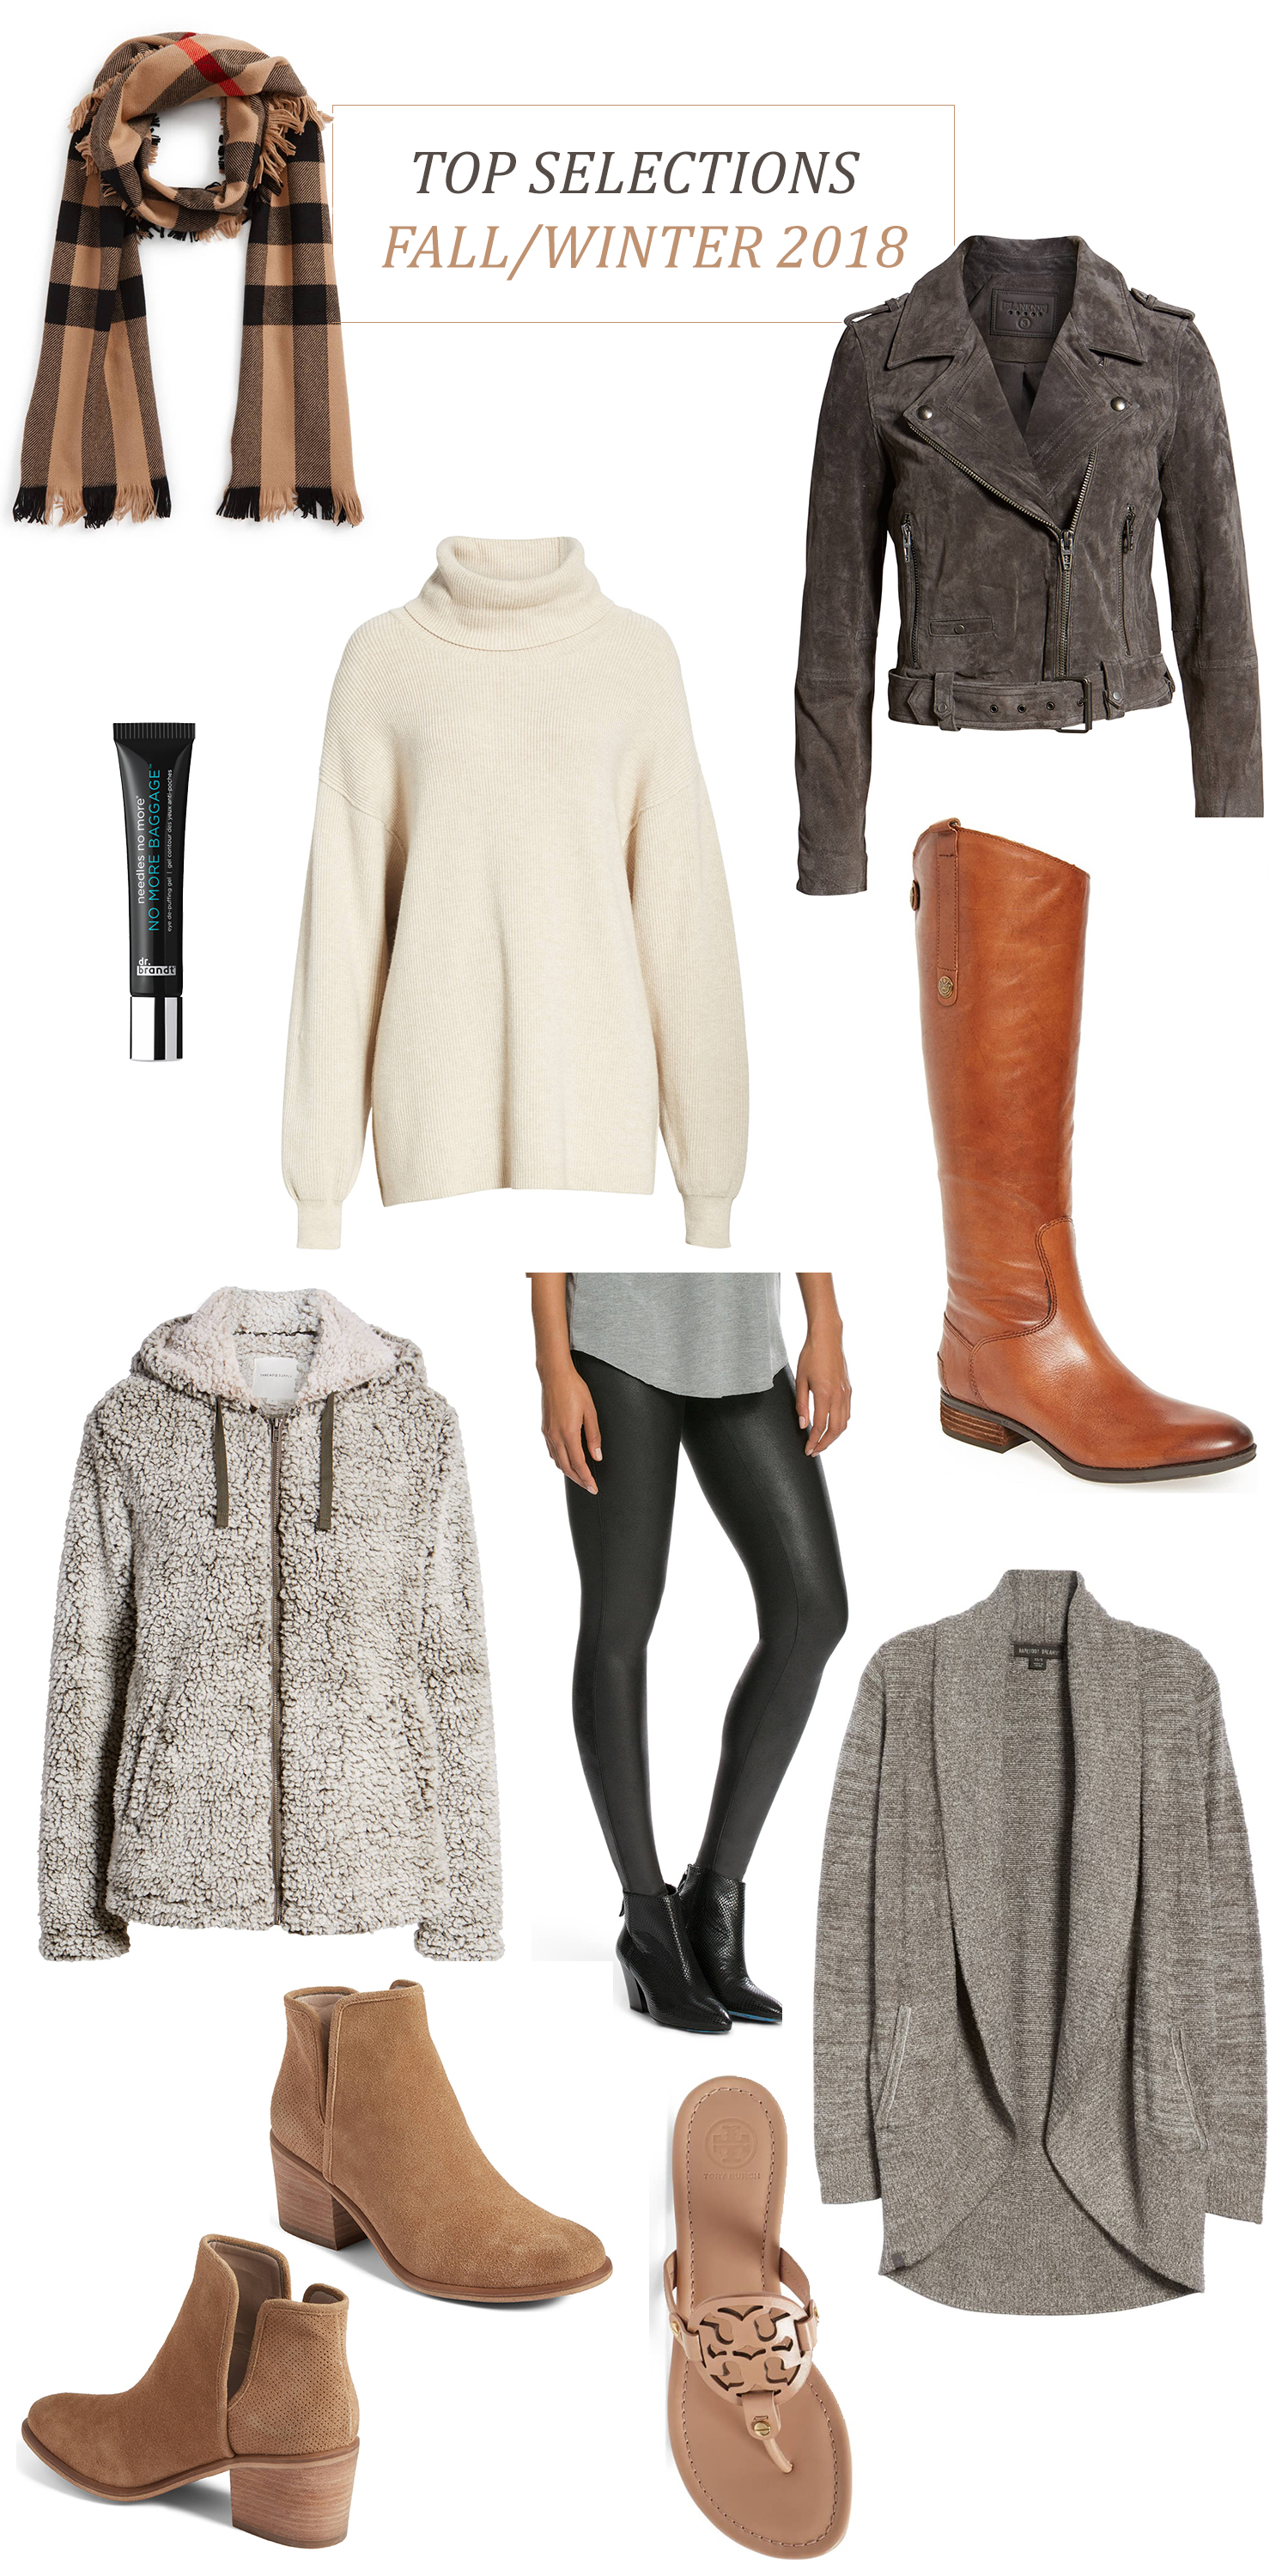 Fall Fashion Top Picks | Buyer Select